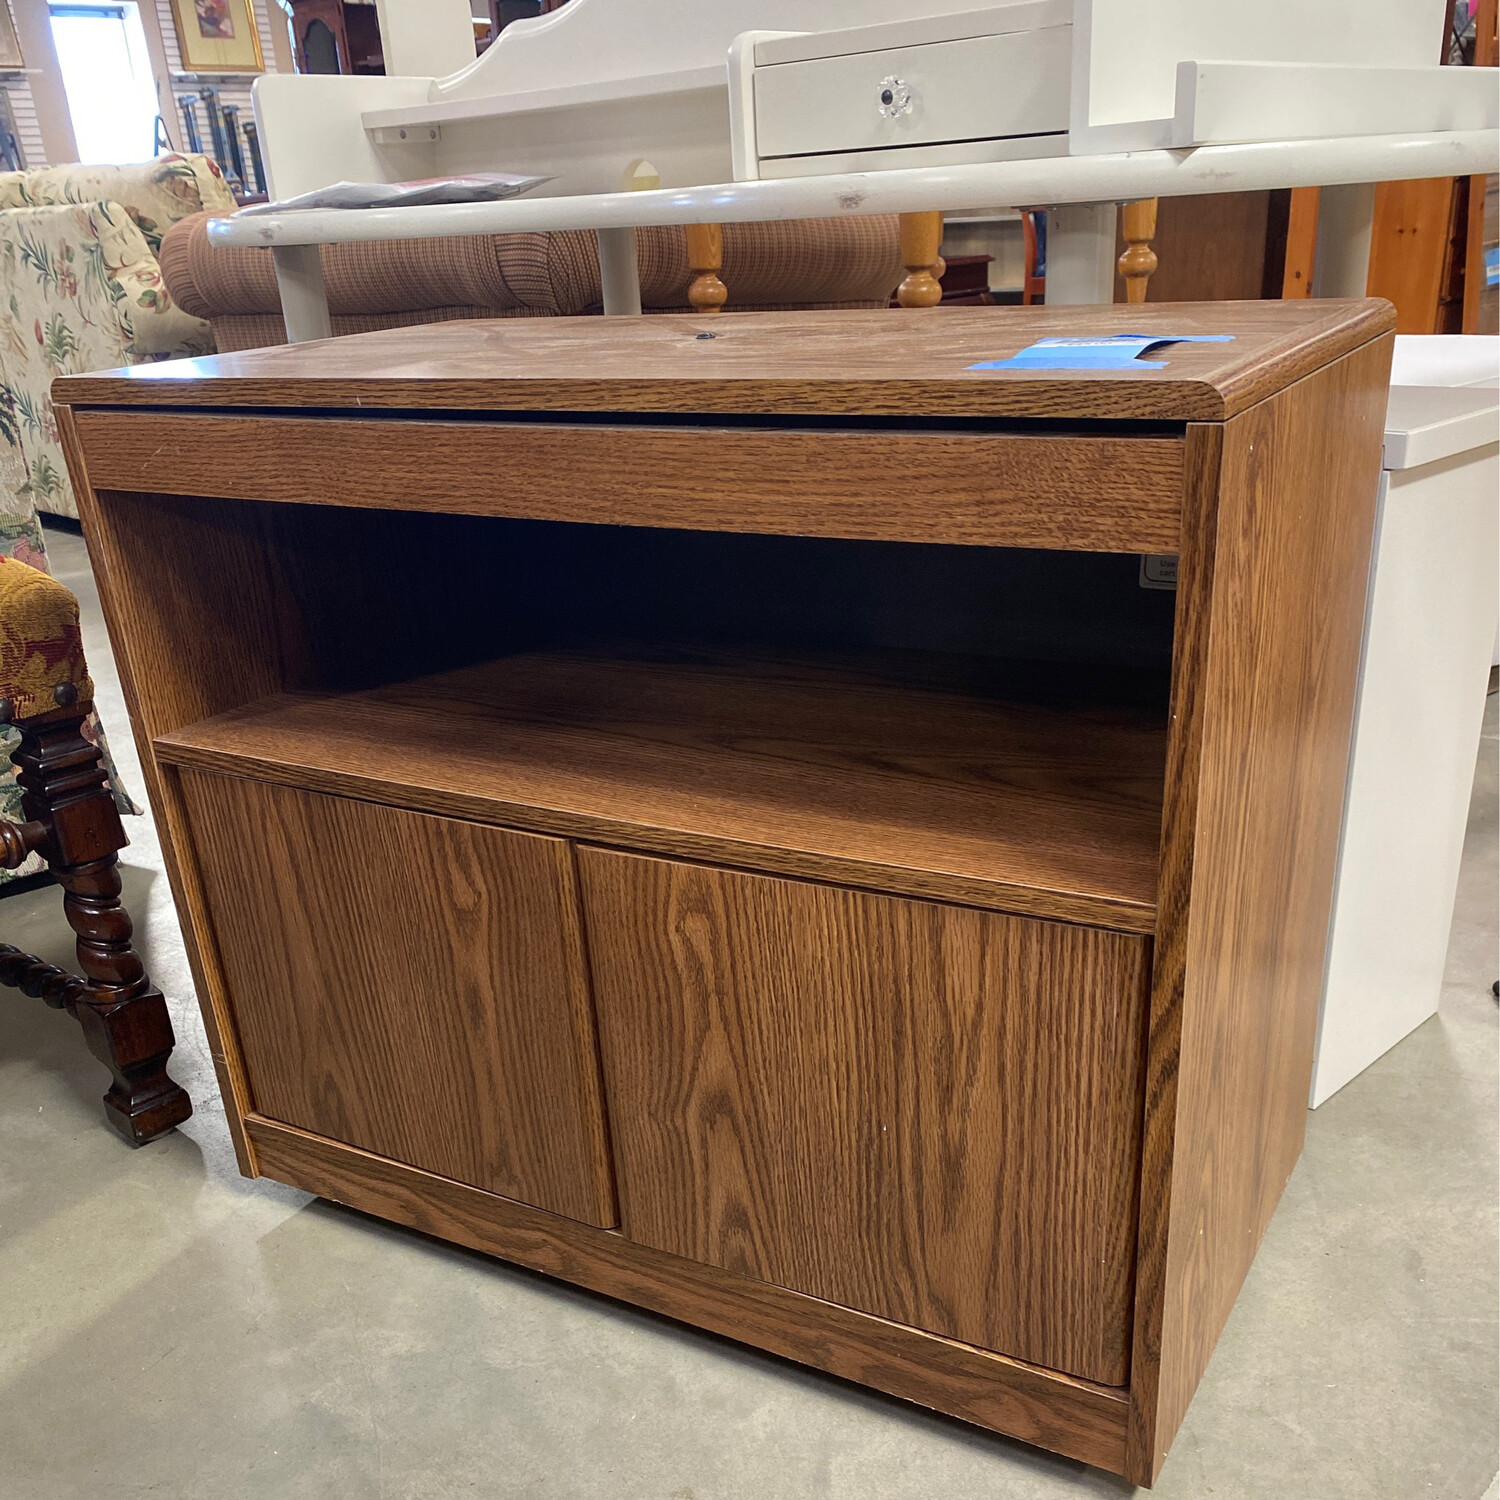 SM TV STAND SWIVEL TOP